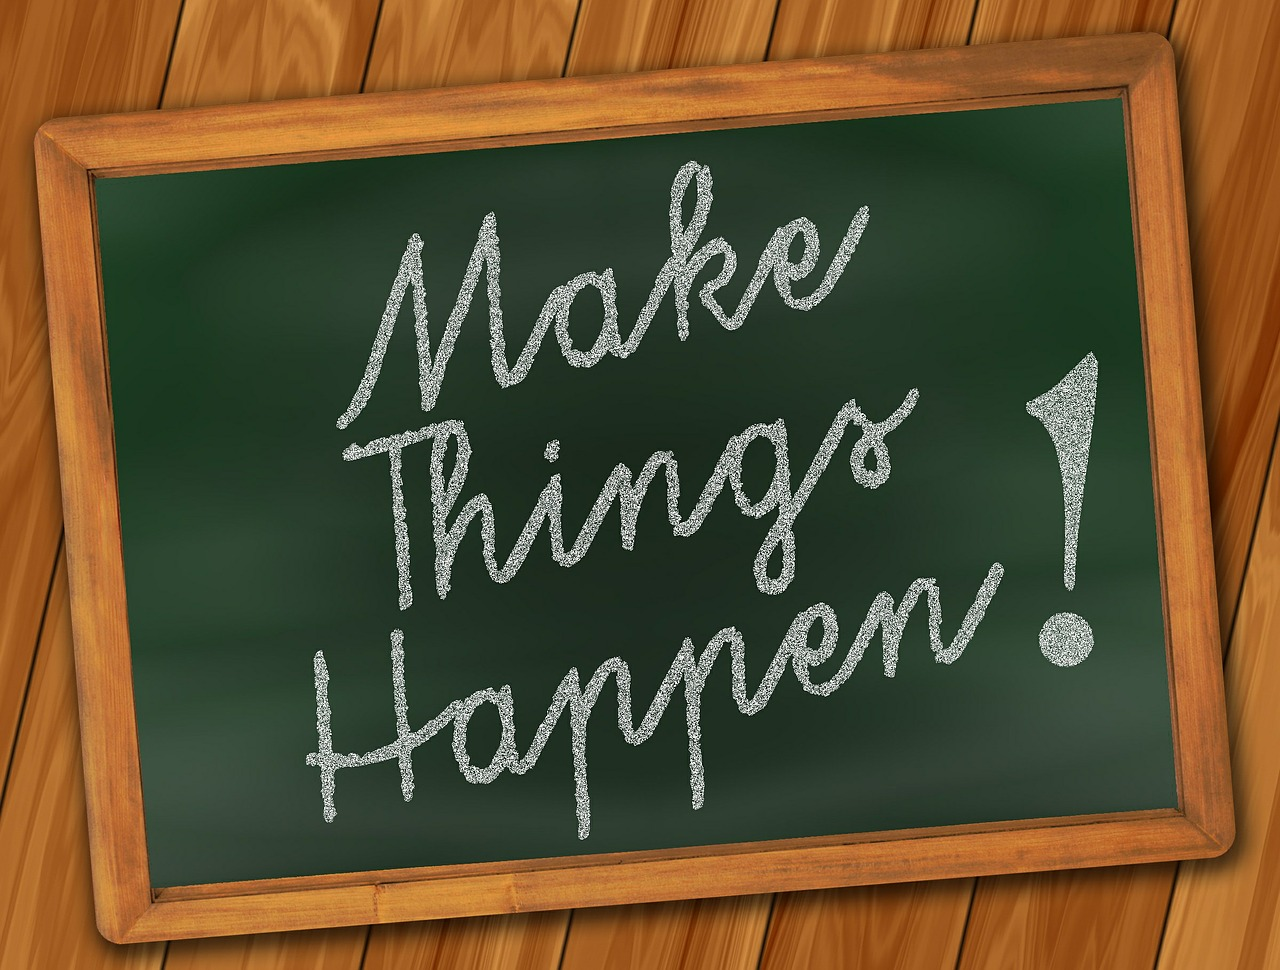 Achievement based programs help you make things happen.